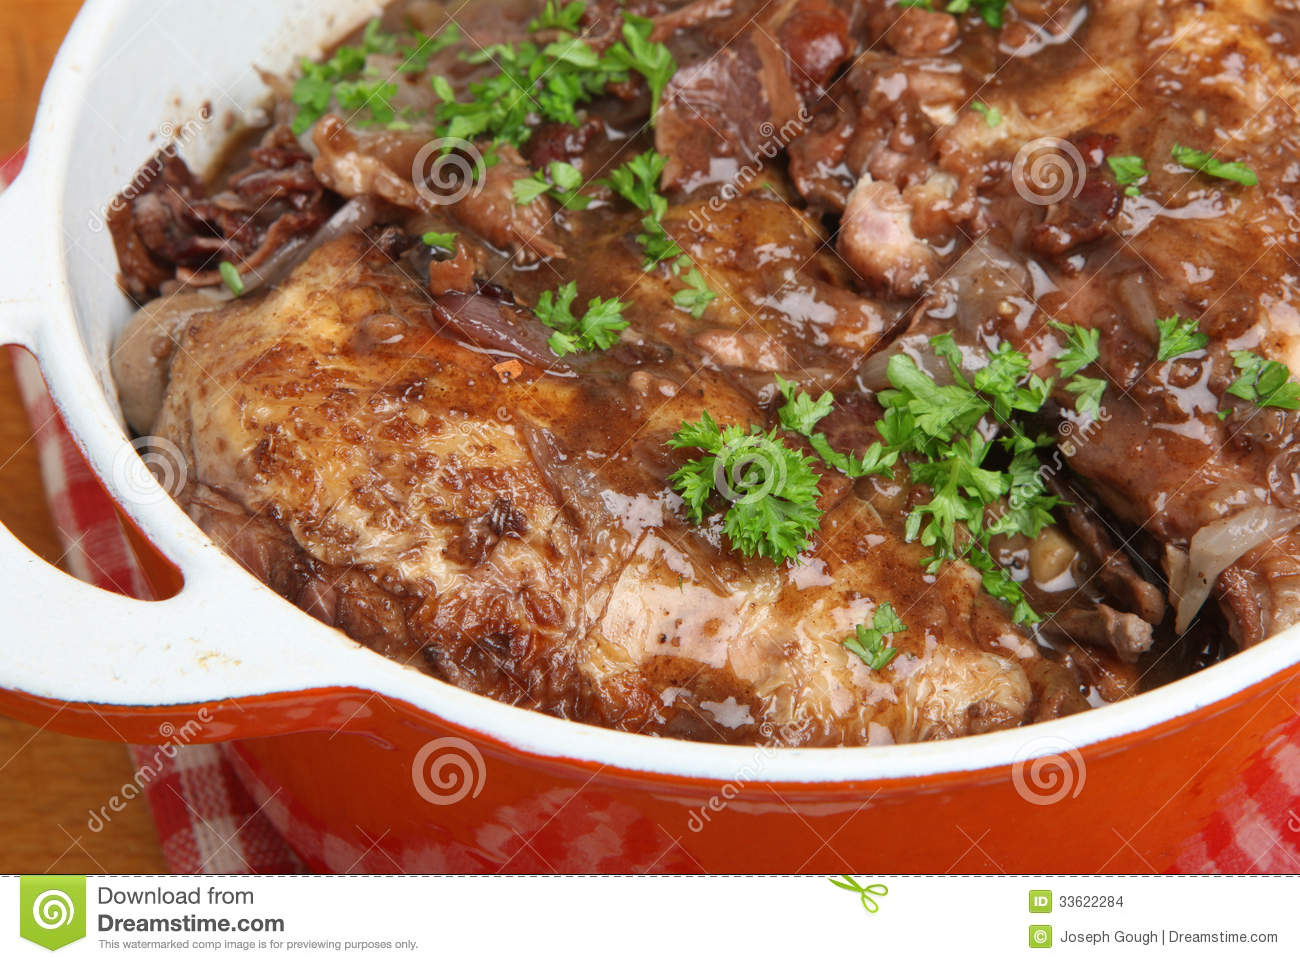 au vin traditional french recipe of chicken casseroled in red wine